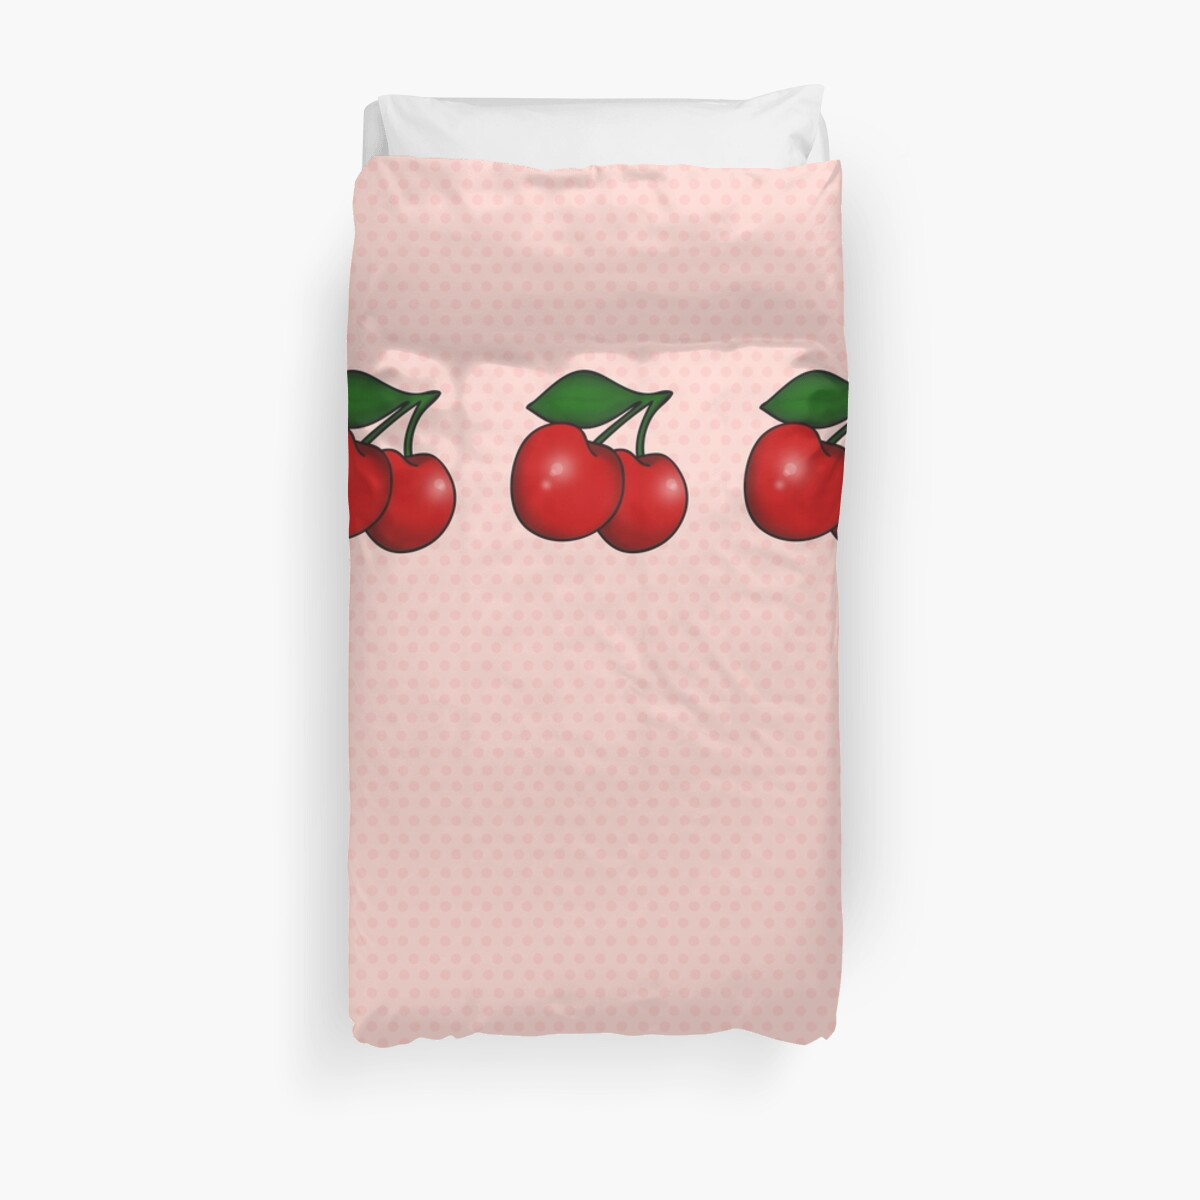 Polka dots and Pair of Cherries in Candy Pink by Tee Brain Creative